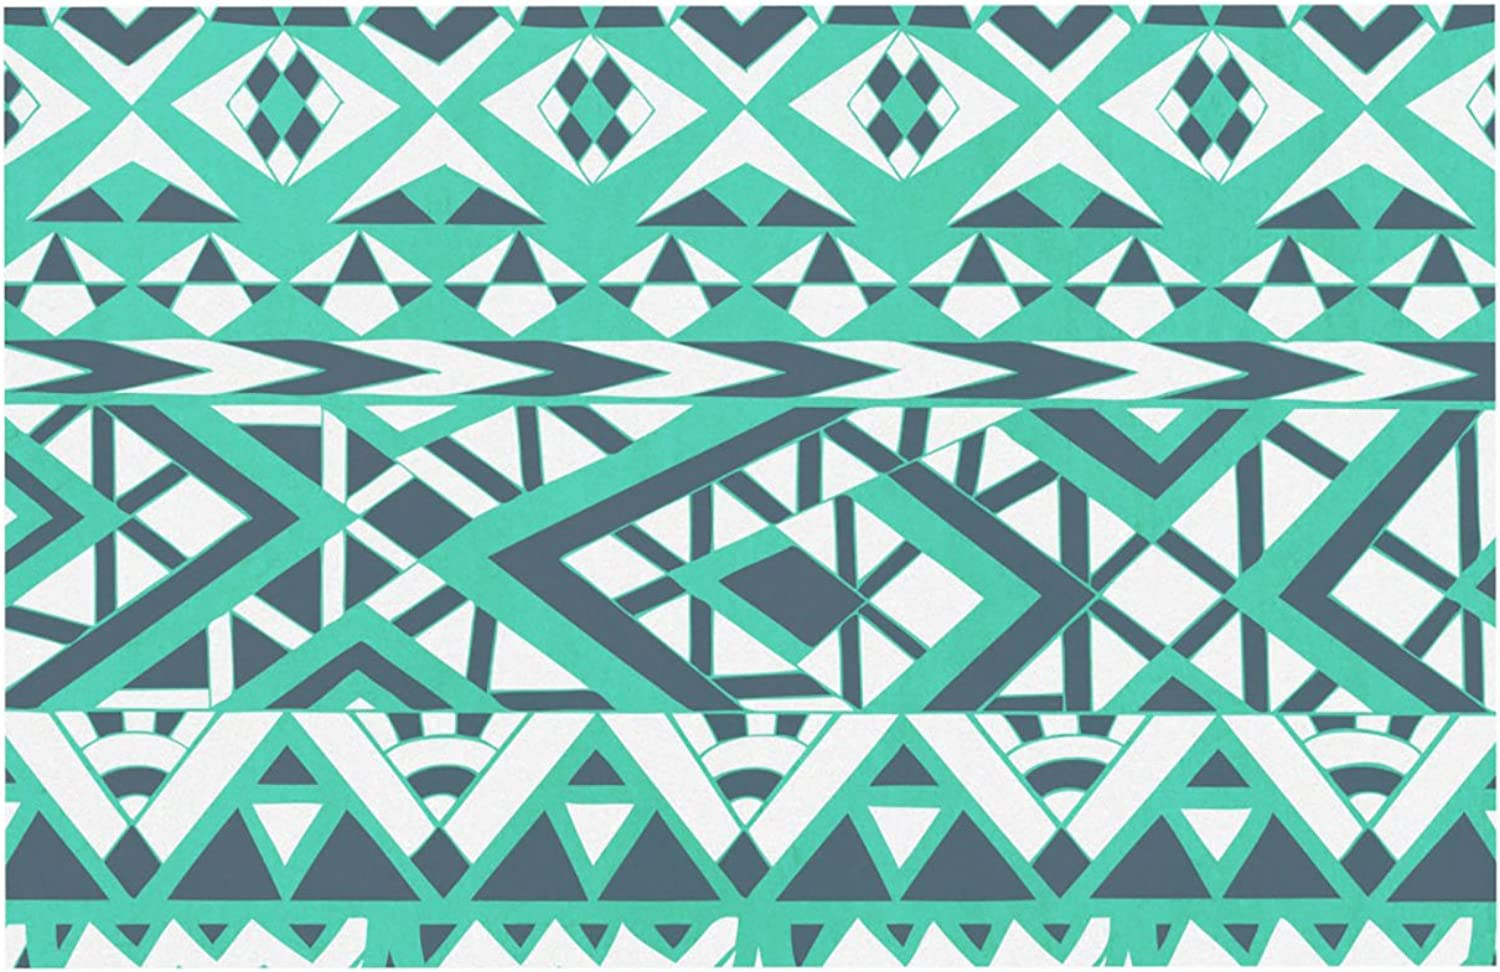 Kess InHouse Pom Graphic Design Tribal Simplicity  Pet Bowl Placemat for Dog and Cat Feeding Mat, 24 by 15Inch, Teal